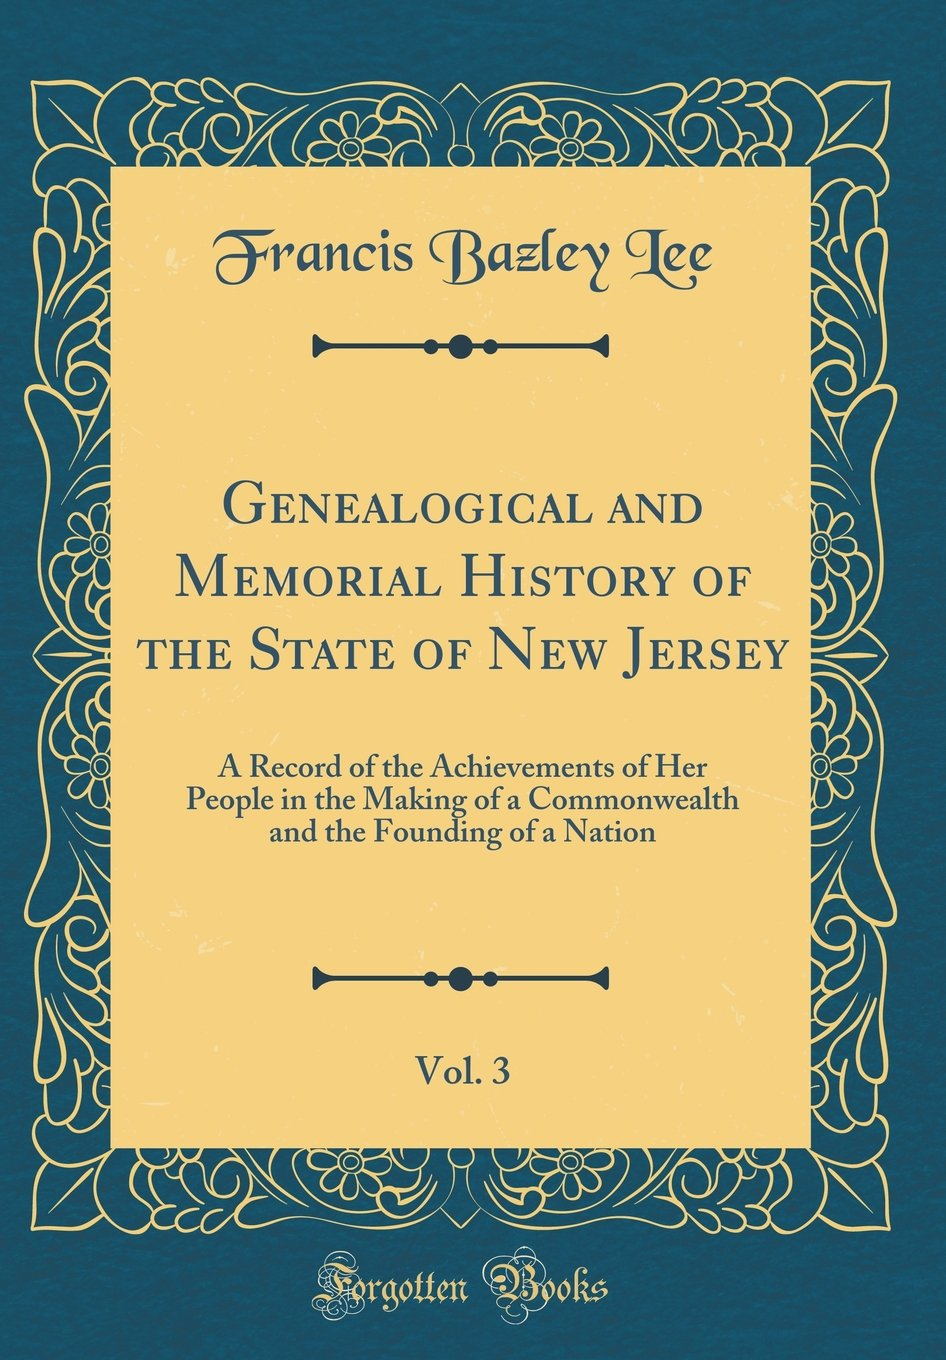 Download Genealogical and Memorial History of the State of New Jersey, Vol. 3: A Record of the Achievements of Her People in the Making of a Commonwealth and the Founding of a Nation (Classic Reprint) ebook